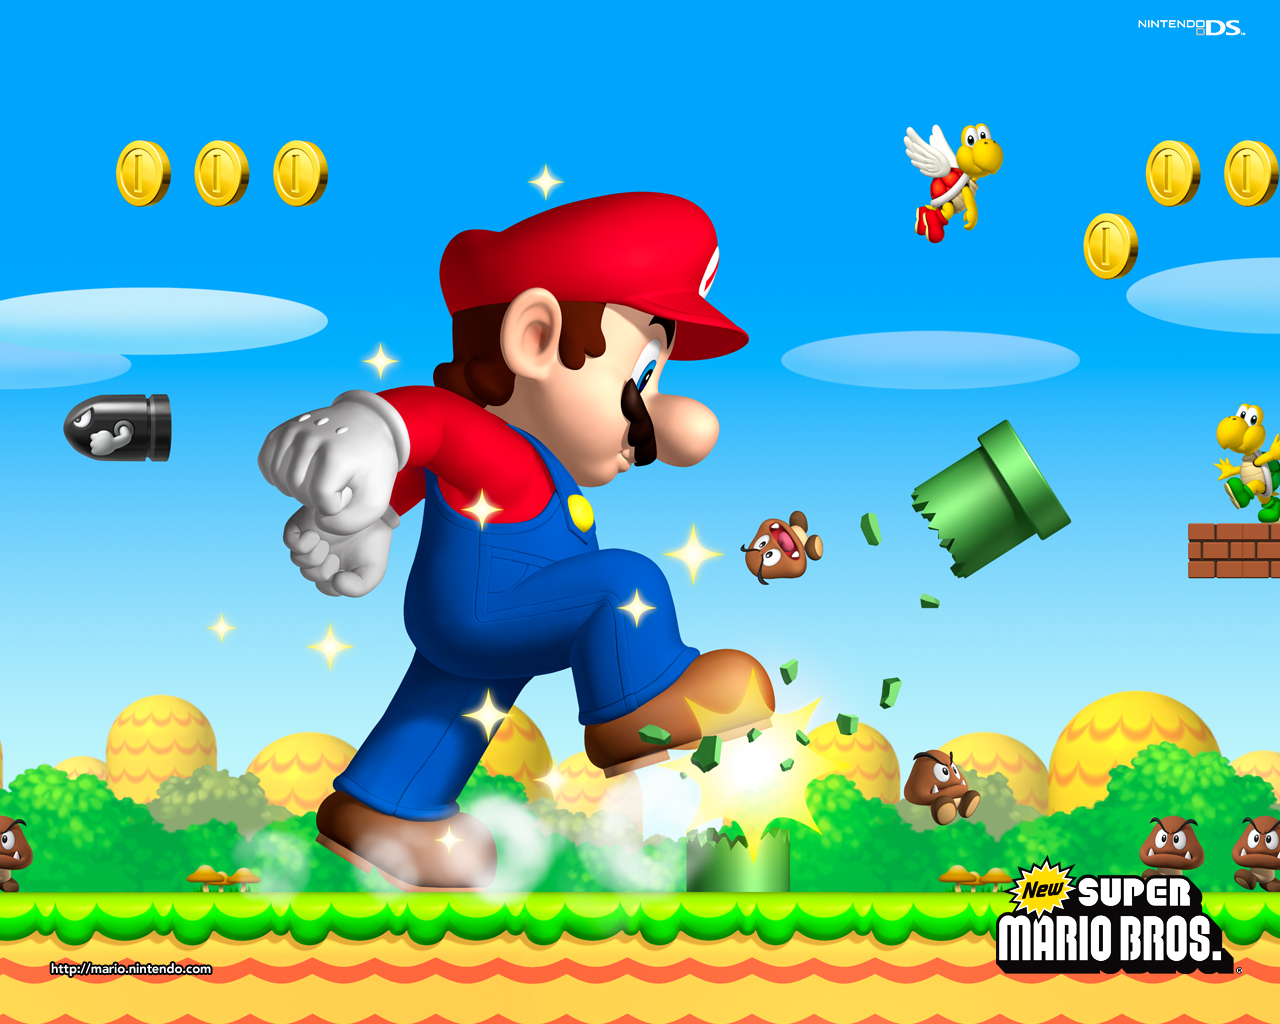 New Super Mario Bros Background   Mario foto 37817204 1280x1024